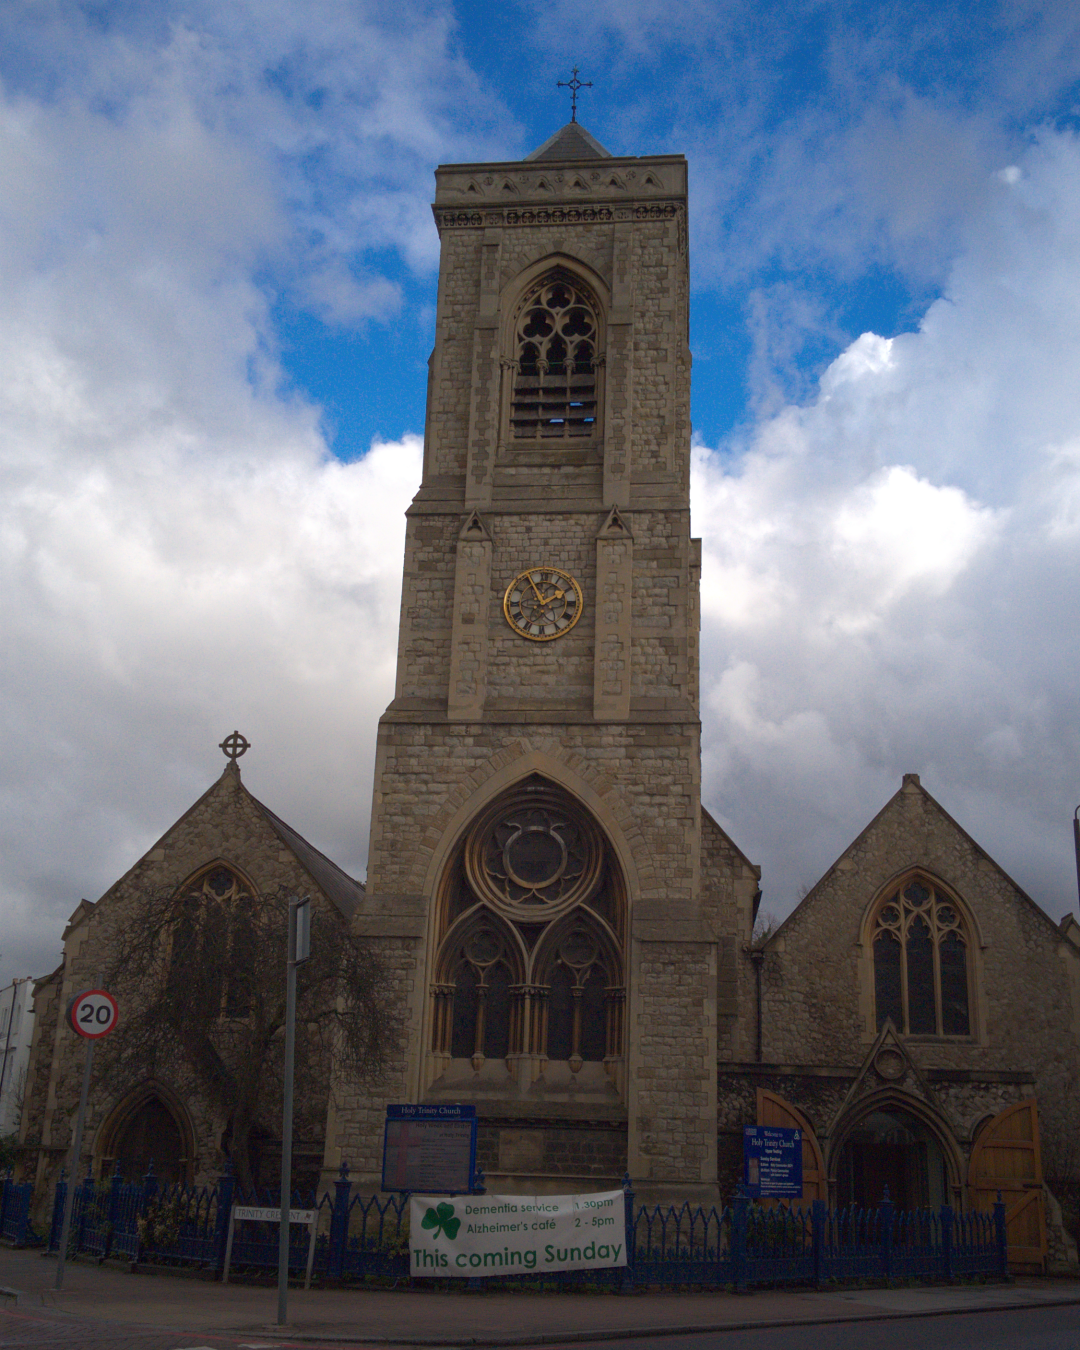 Holy Trinity, Upper Tooting, situated on Trinity Road, SW17 7RH, London, photographed on 9 March 2016